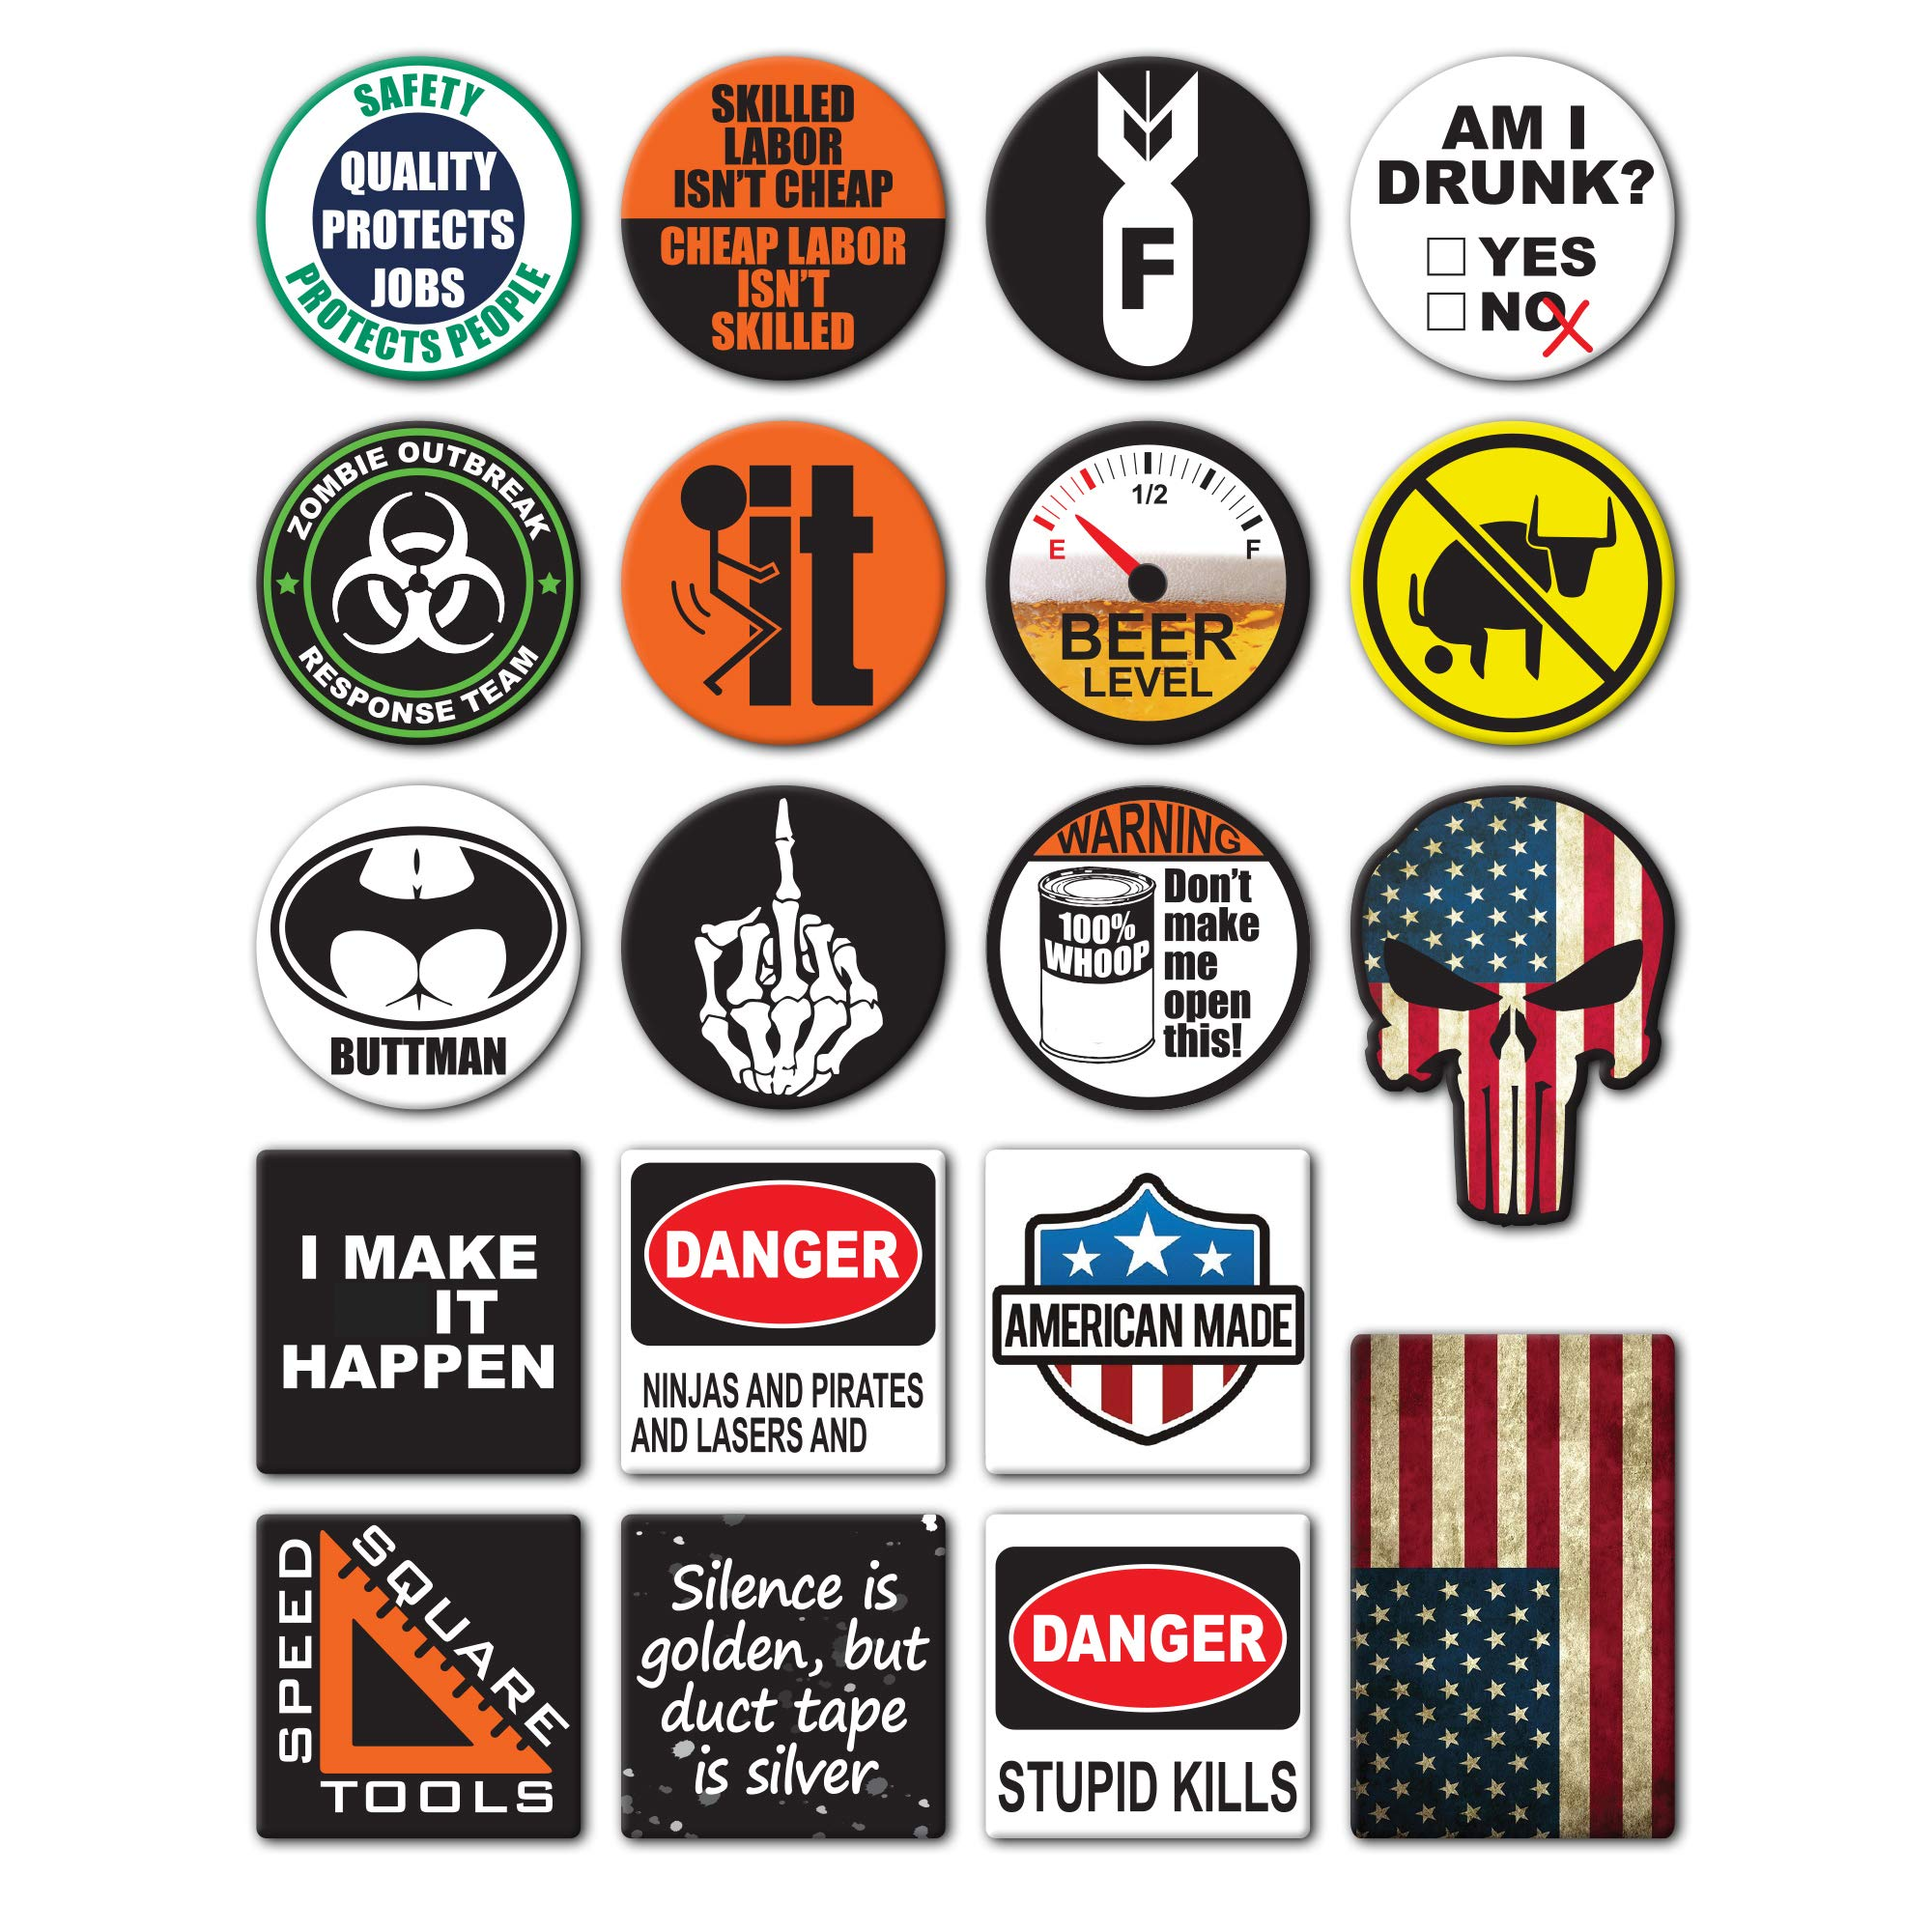 19-Pack Hard Hat, Tool Box Stickers | 100% Vinyl | Proudly MADE IN USA! Funny decals for Construction, Electrician, Union, Oilfield, Military, Fire Crew, Mechanics | Display your American Flag! by SpeedSquare Tools